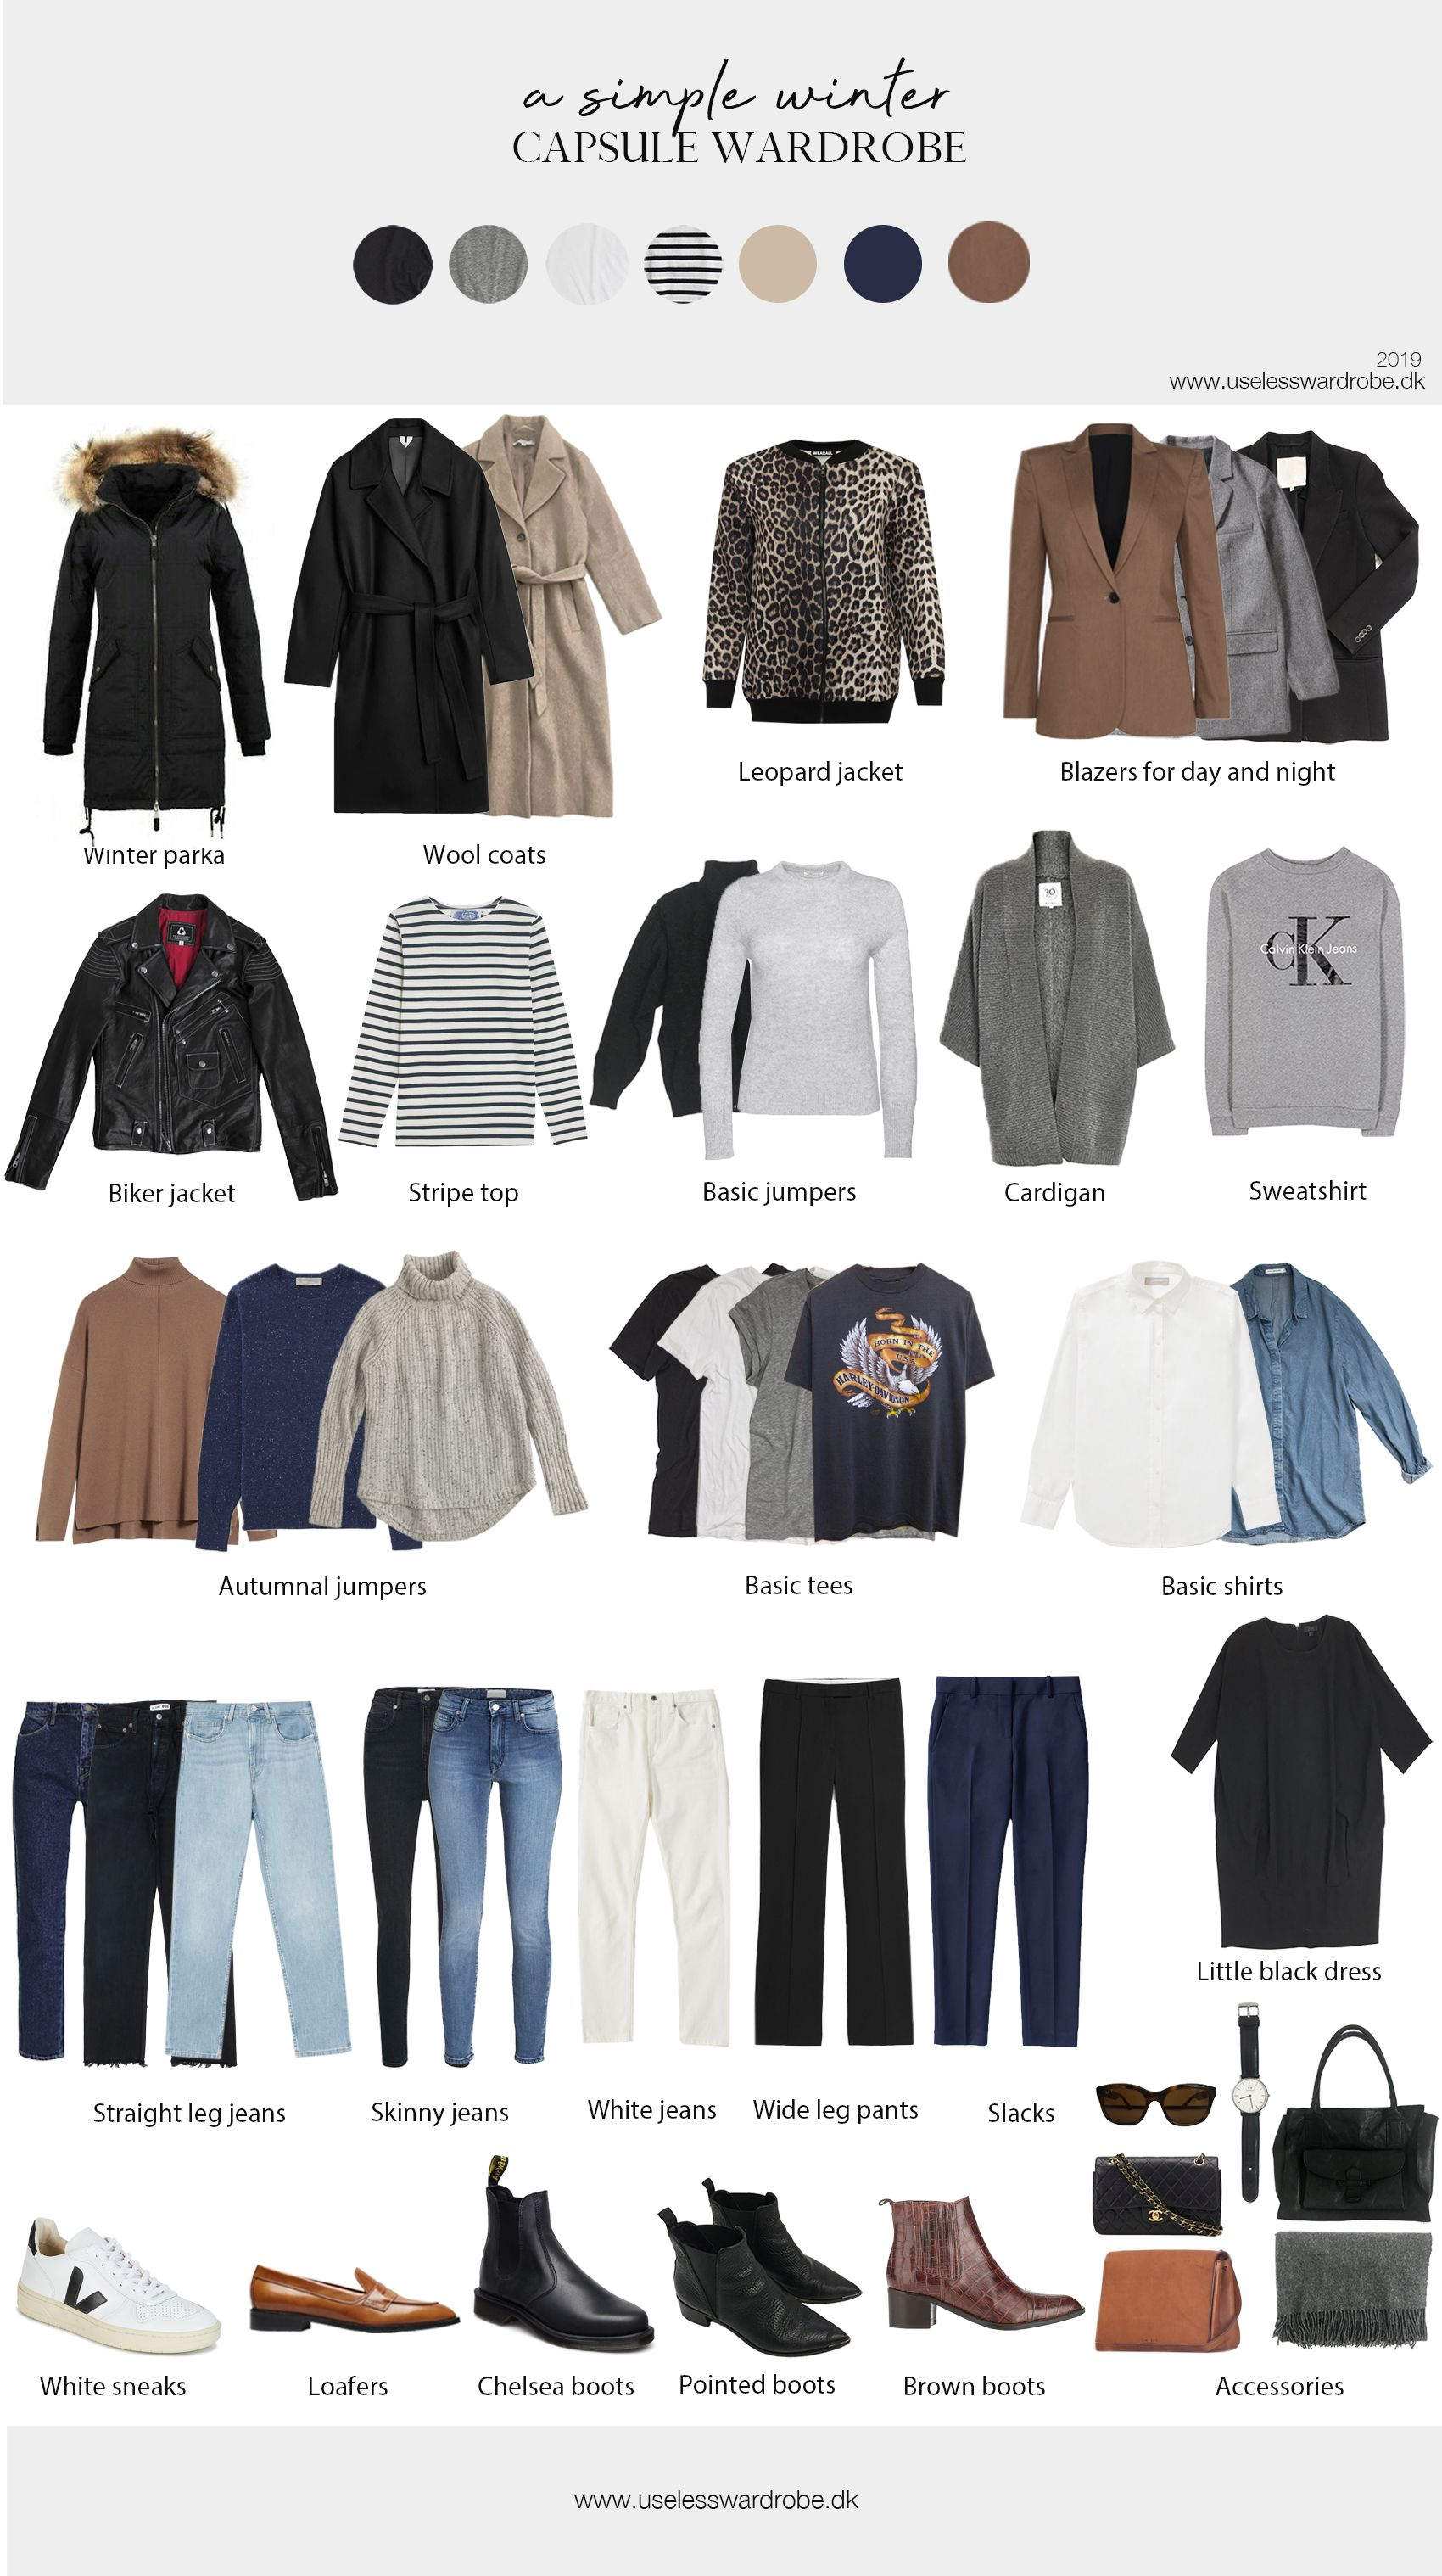 36 piece winter capsule wardrobe